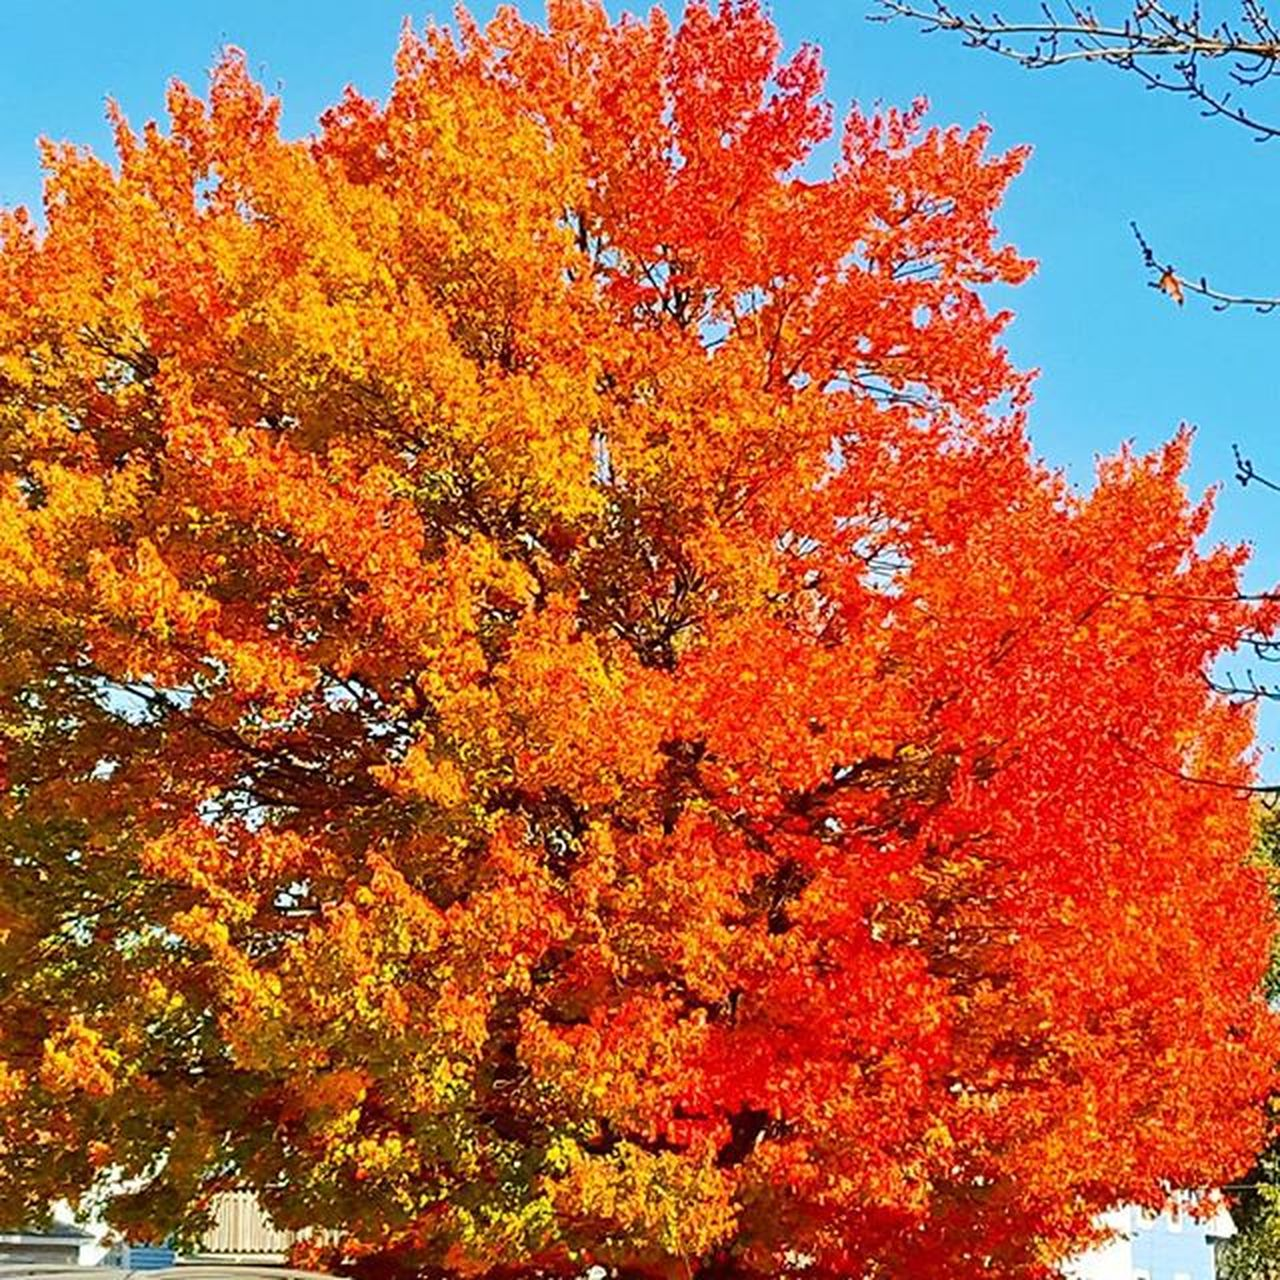 autumn, change, leaf, tree, orange color, nature, maple tree, maple leaf, beauty in nature, outdoors, red, day, low angle view, no people, tranquility, scenics, multi colored, growth, sky, close-up, maple